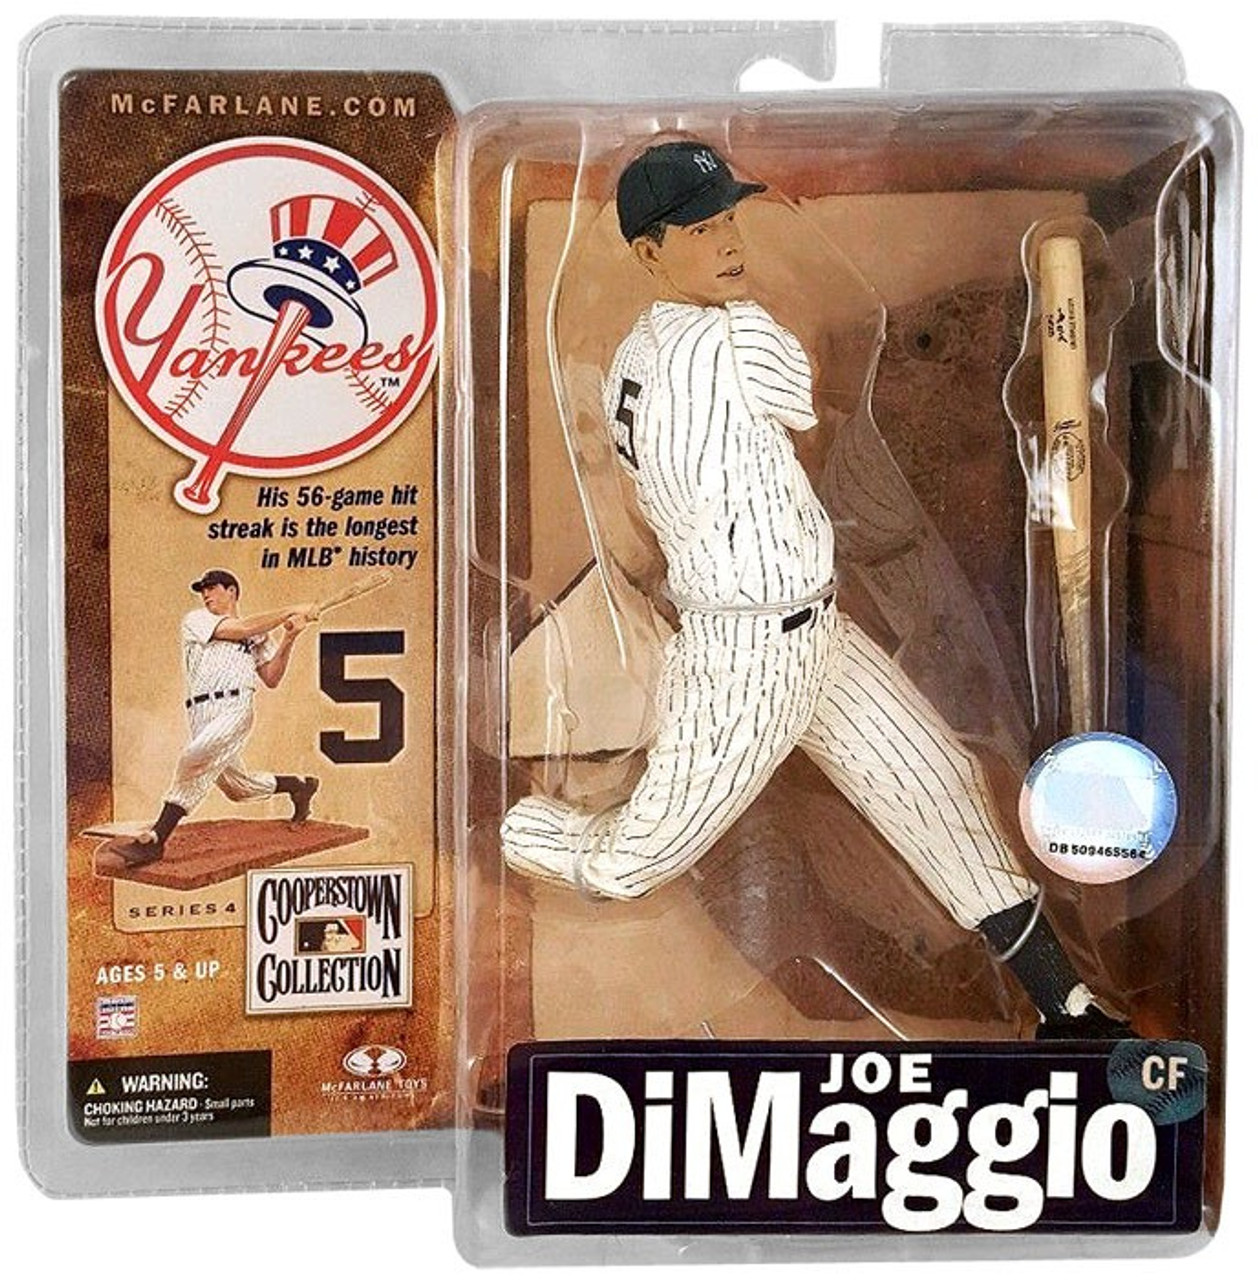 McFarlane Toys MLB New York Yankees Cooperstown Collection Series 4 Joe DiMaggio Action Figure [Pinstripes]